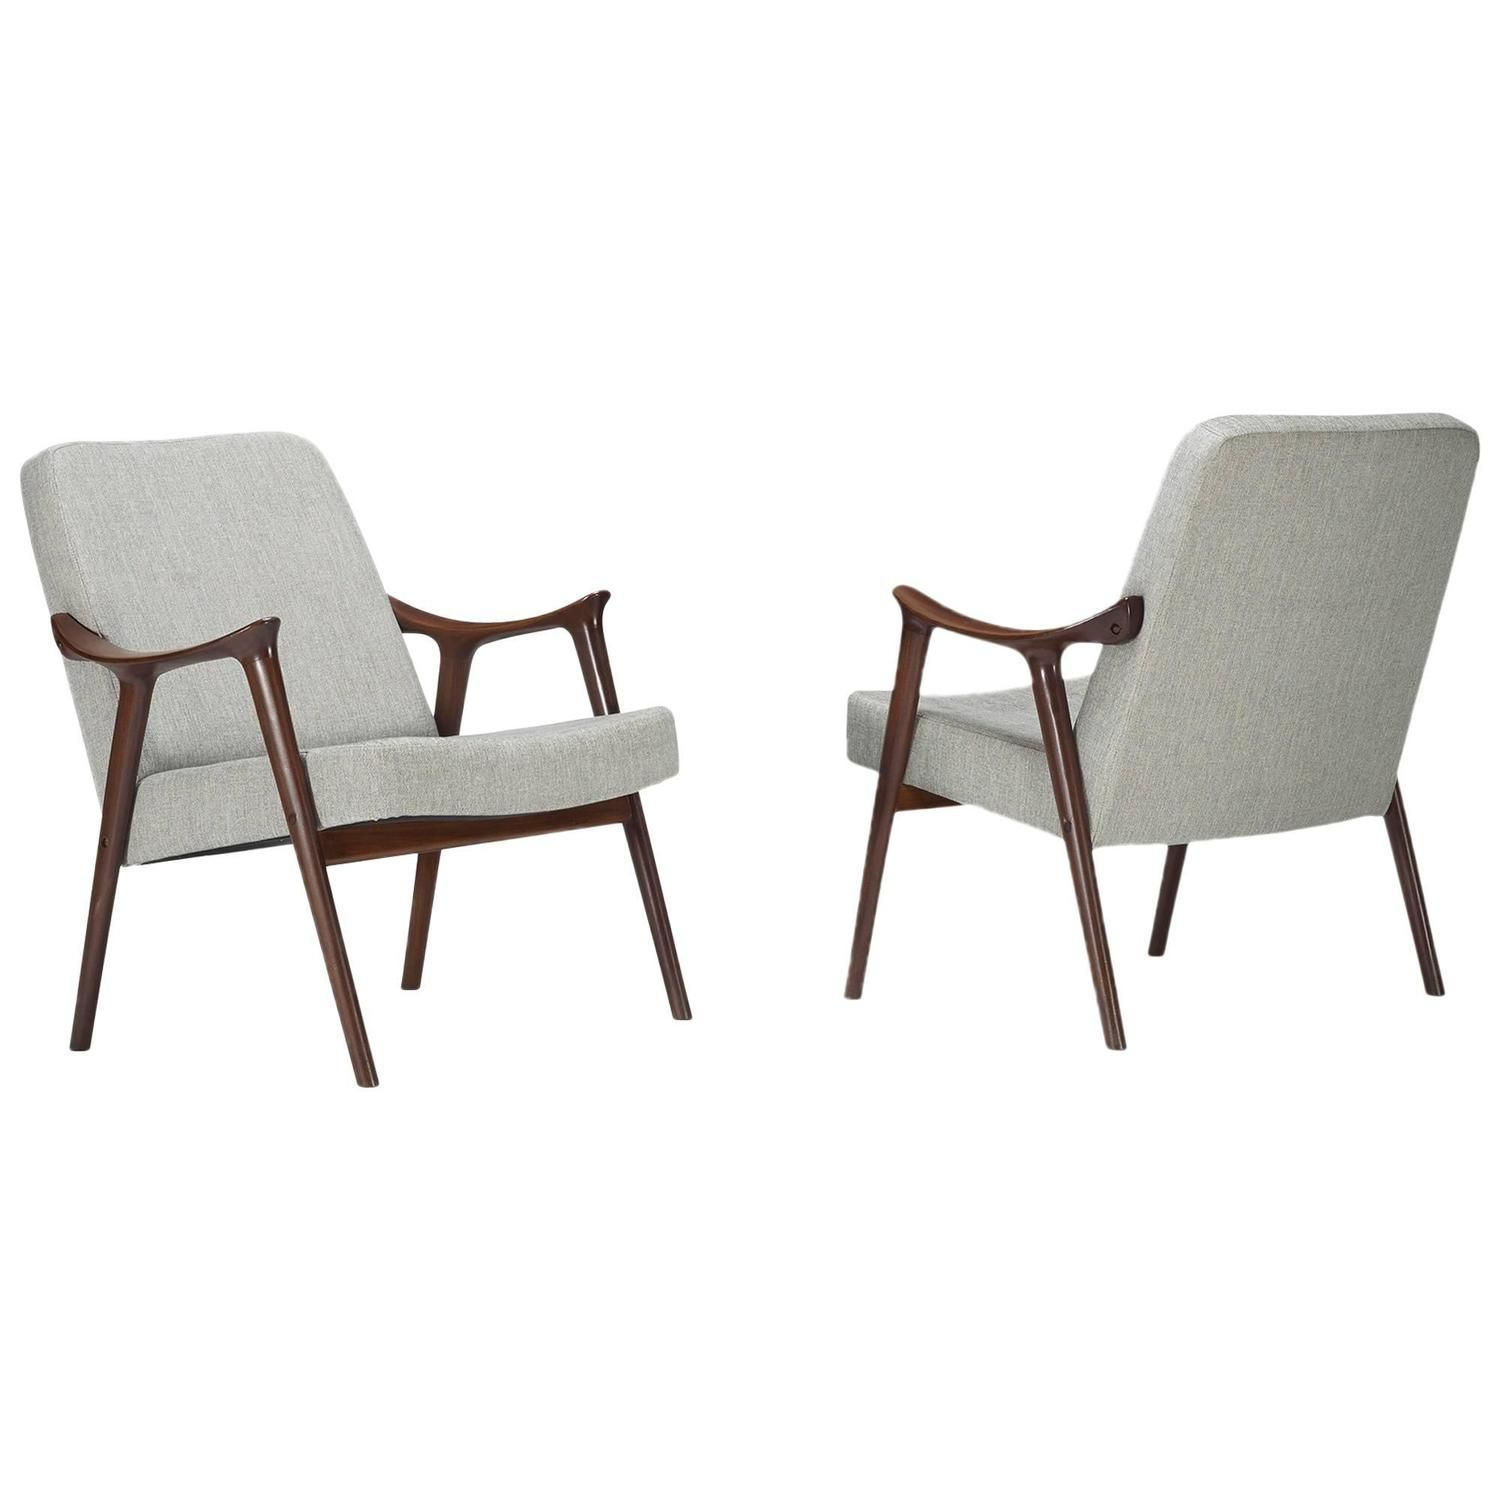 Lounge Chairs Pair by Rolf Rastad and Adolf Relling. I inherited a similar chair...thinking I may need to have it restored.